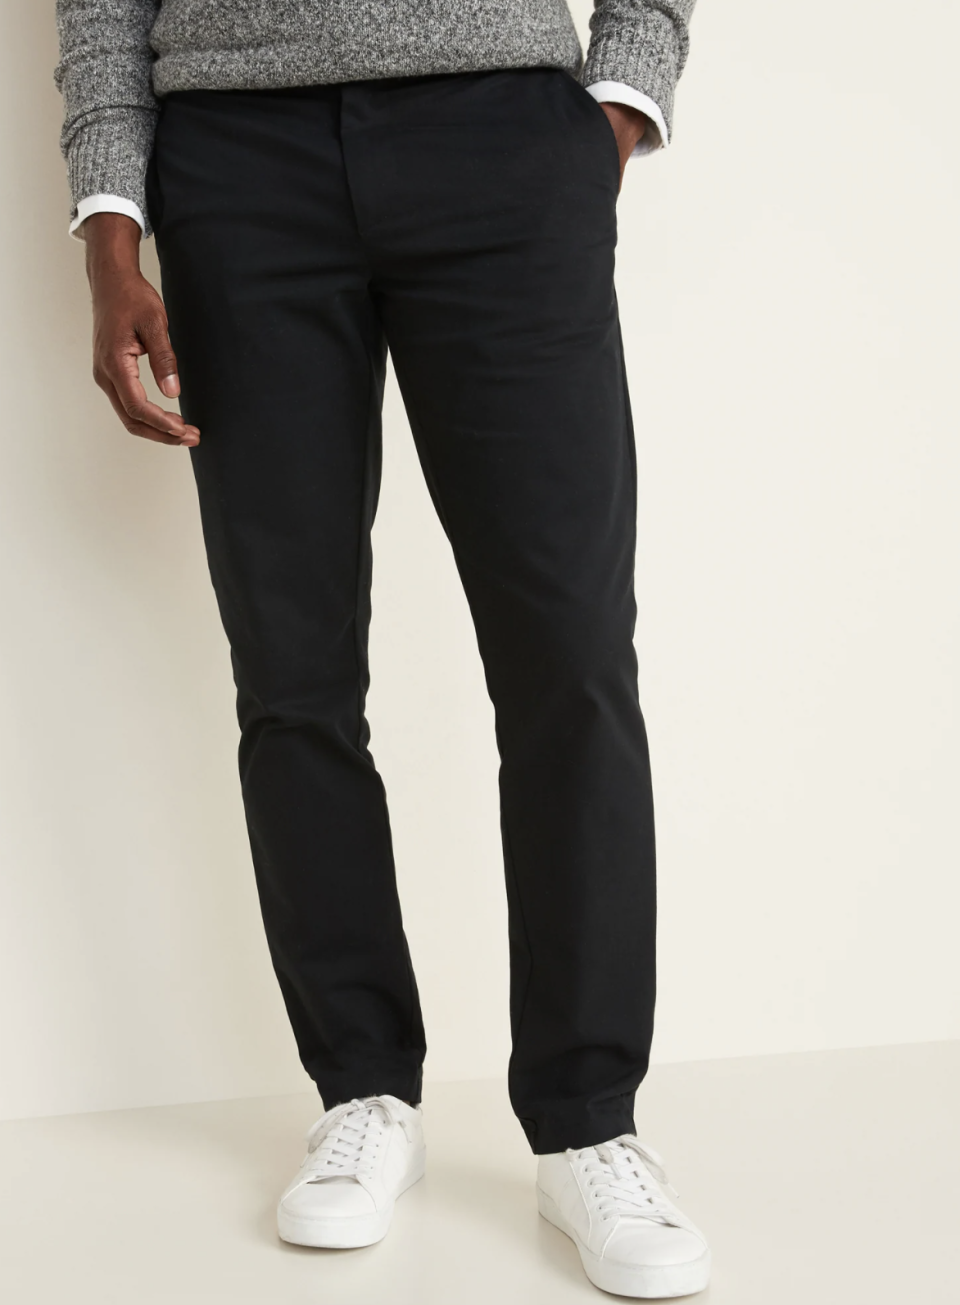 All-New Slim Ultimate Built-In Flex Chinos for Men - on sale at Old Navy, $25 (originally $50).